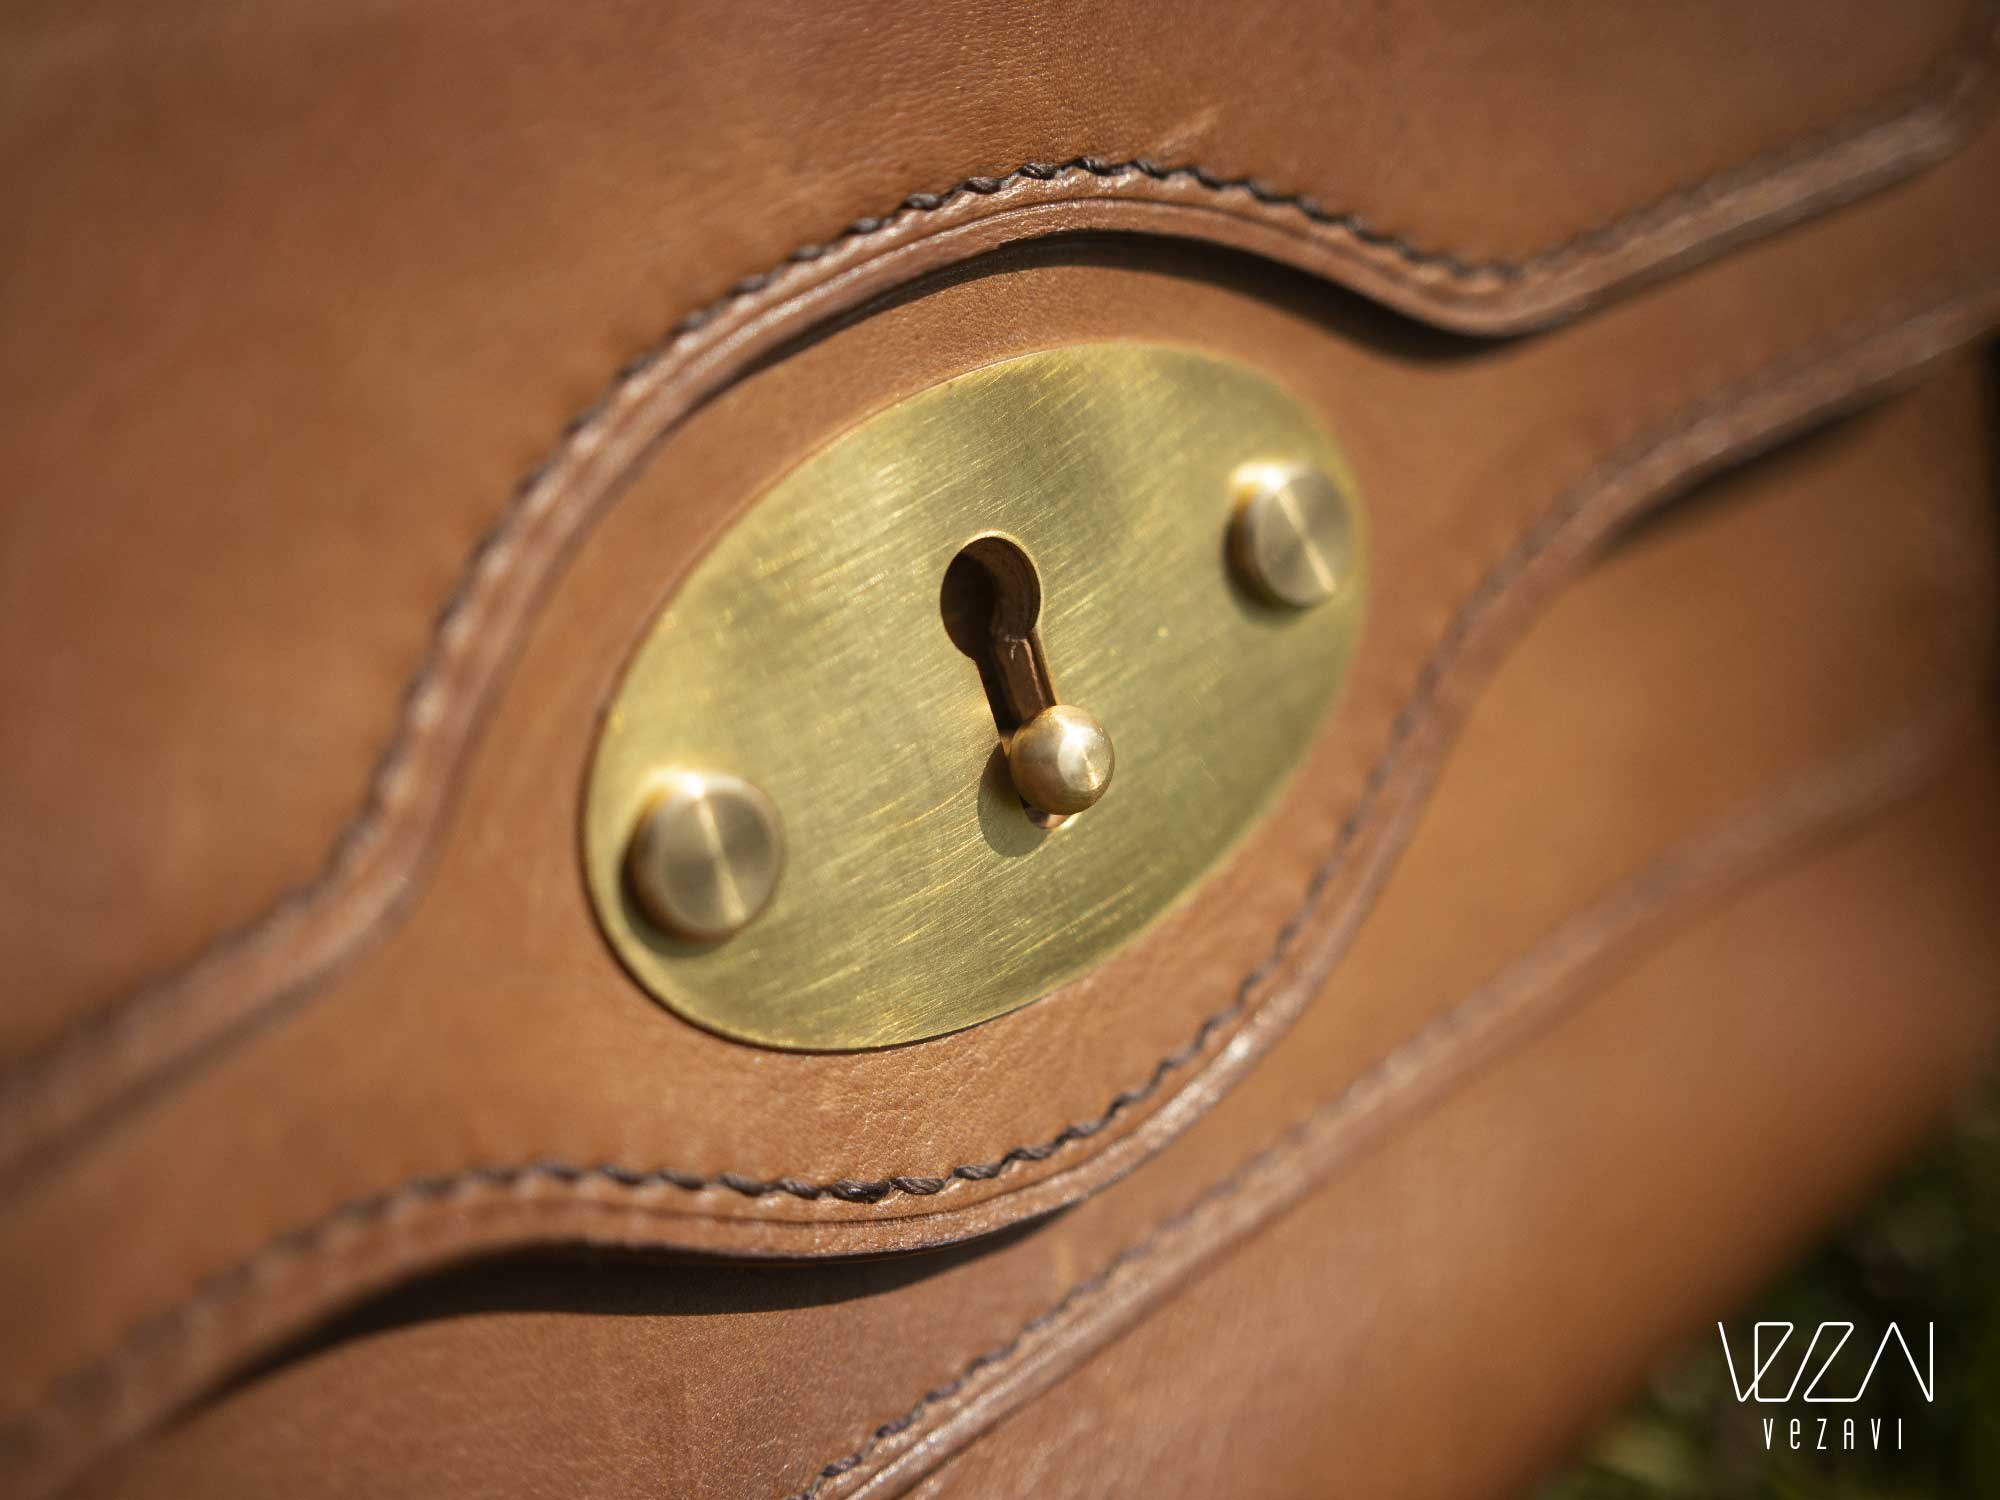 Leather bag | Handmade bag | Vintage style bag